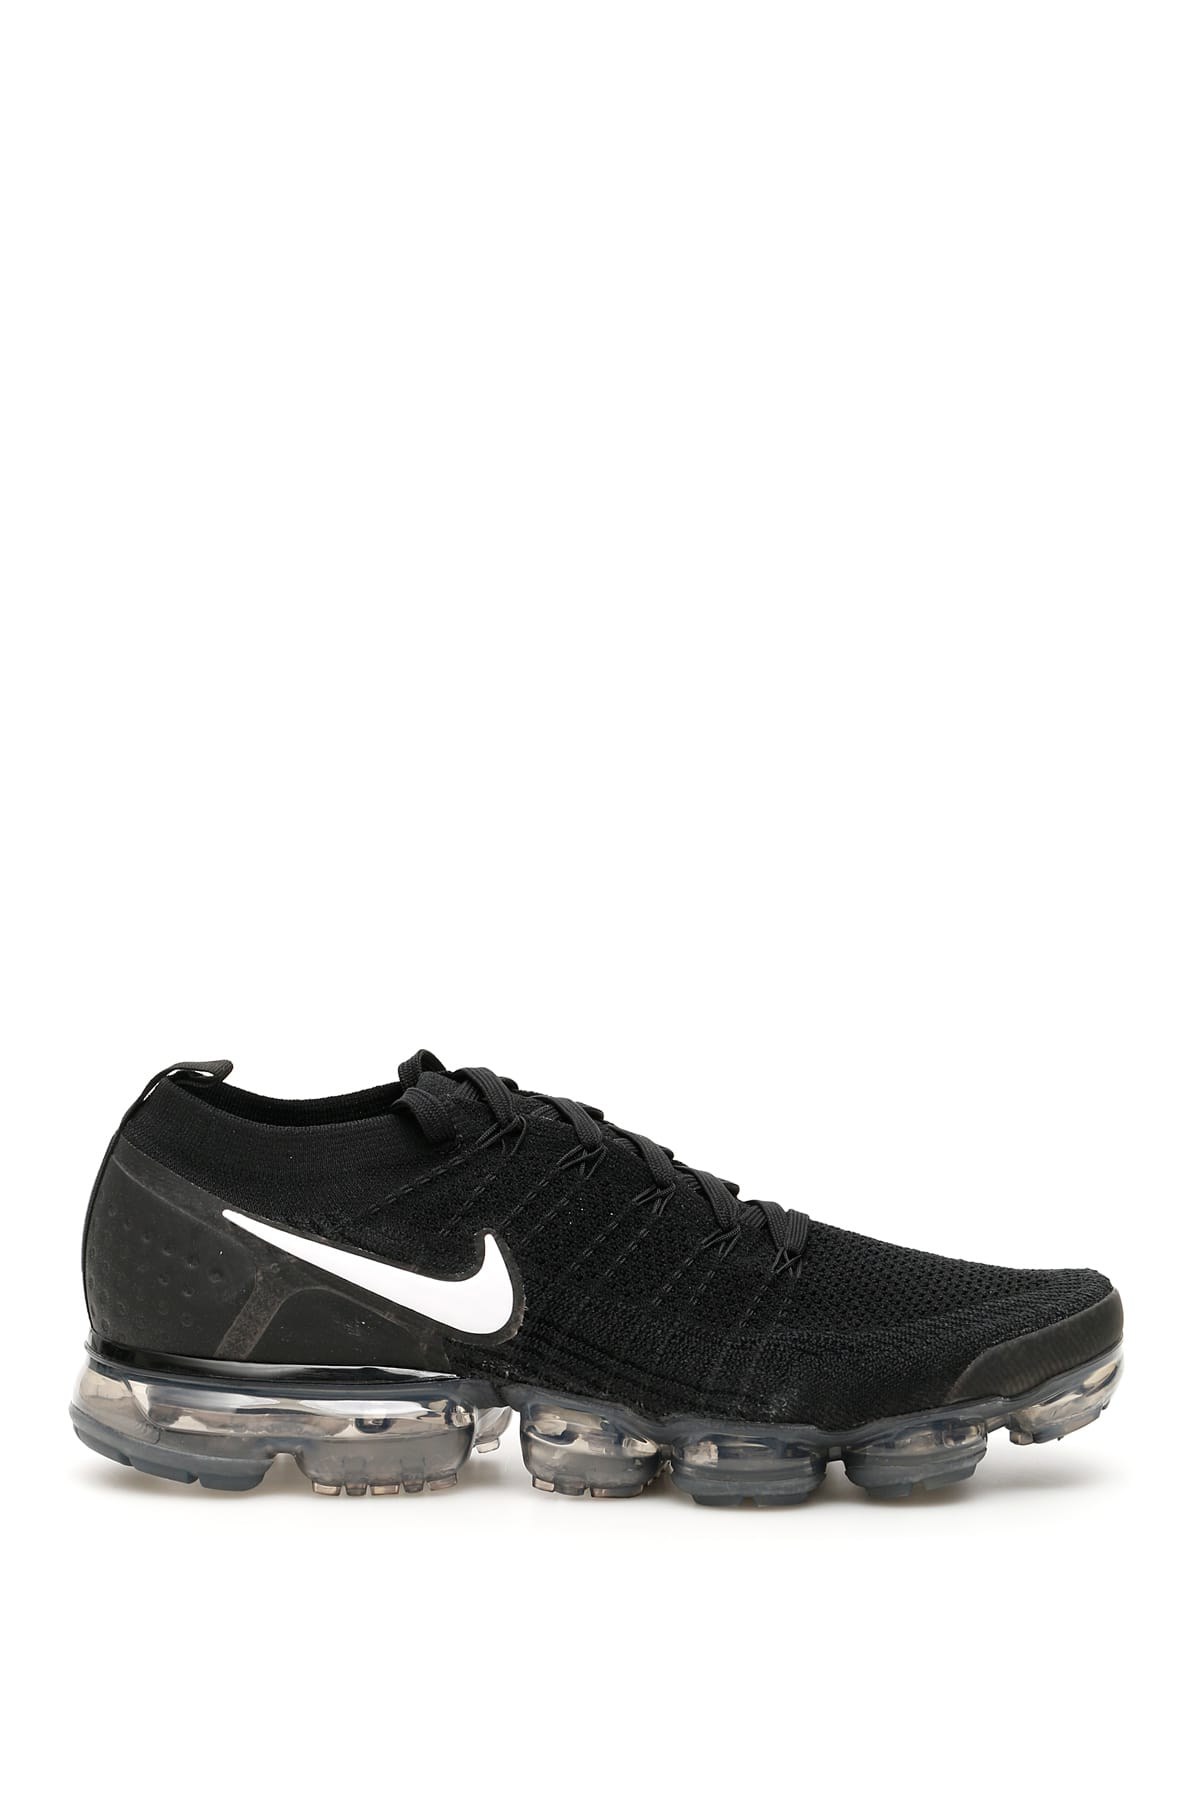 new product 13d07 9a08a Nike Air Vapormax Flyknit 2 Sneakers